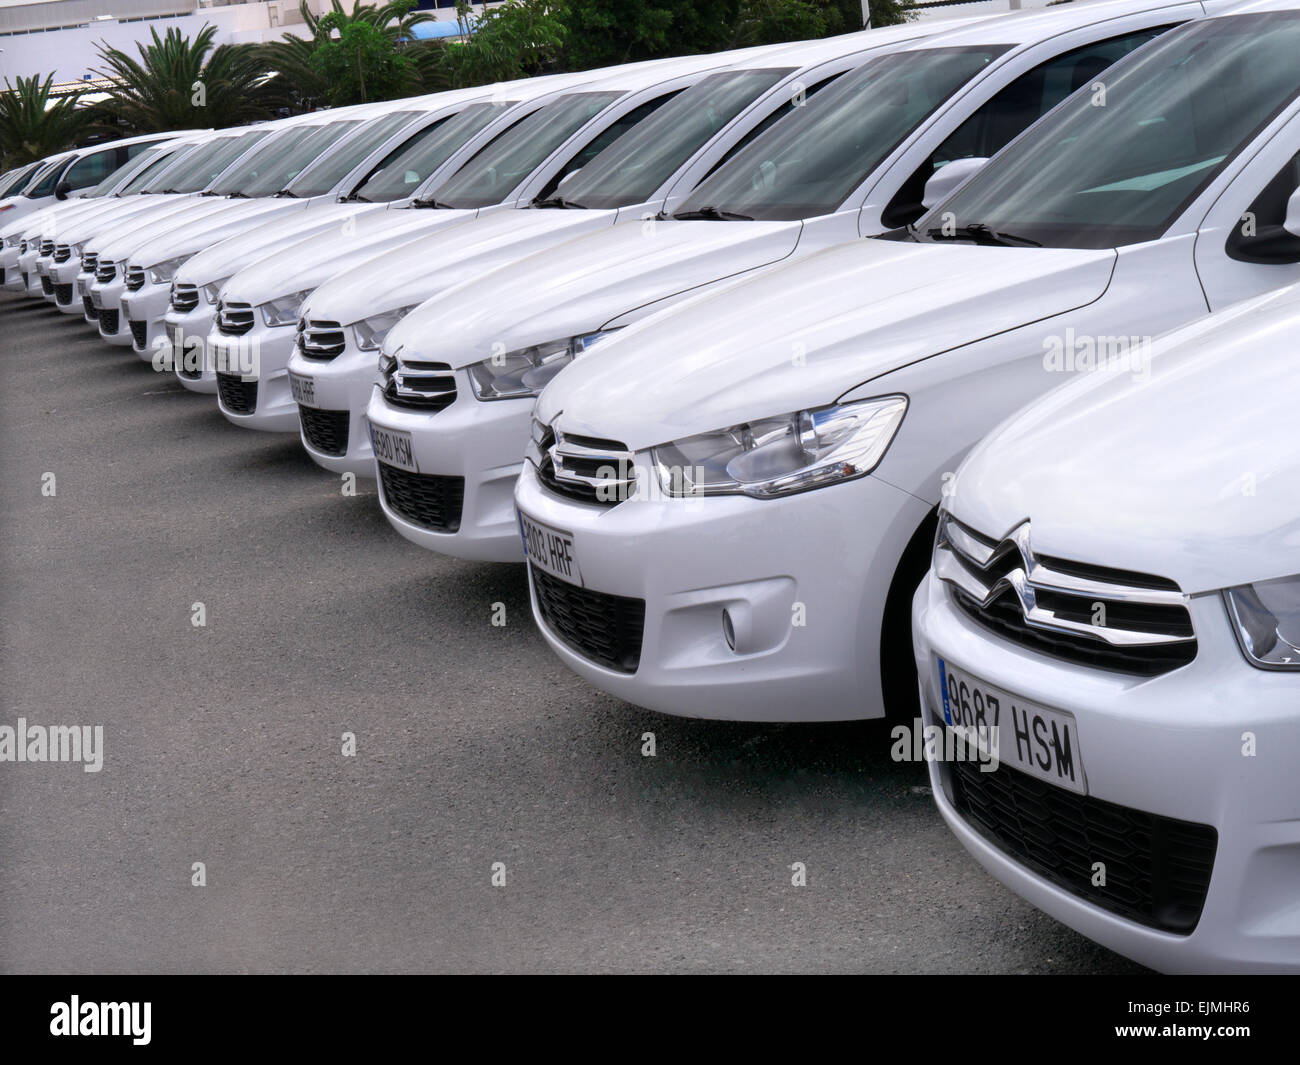 Line Of Identical White Citroen Picasso Rental Cars In Airport Car Park    Stock Image